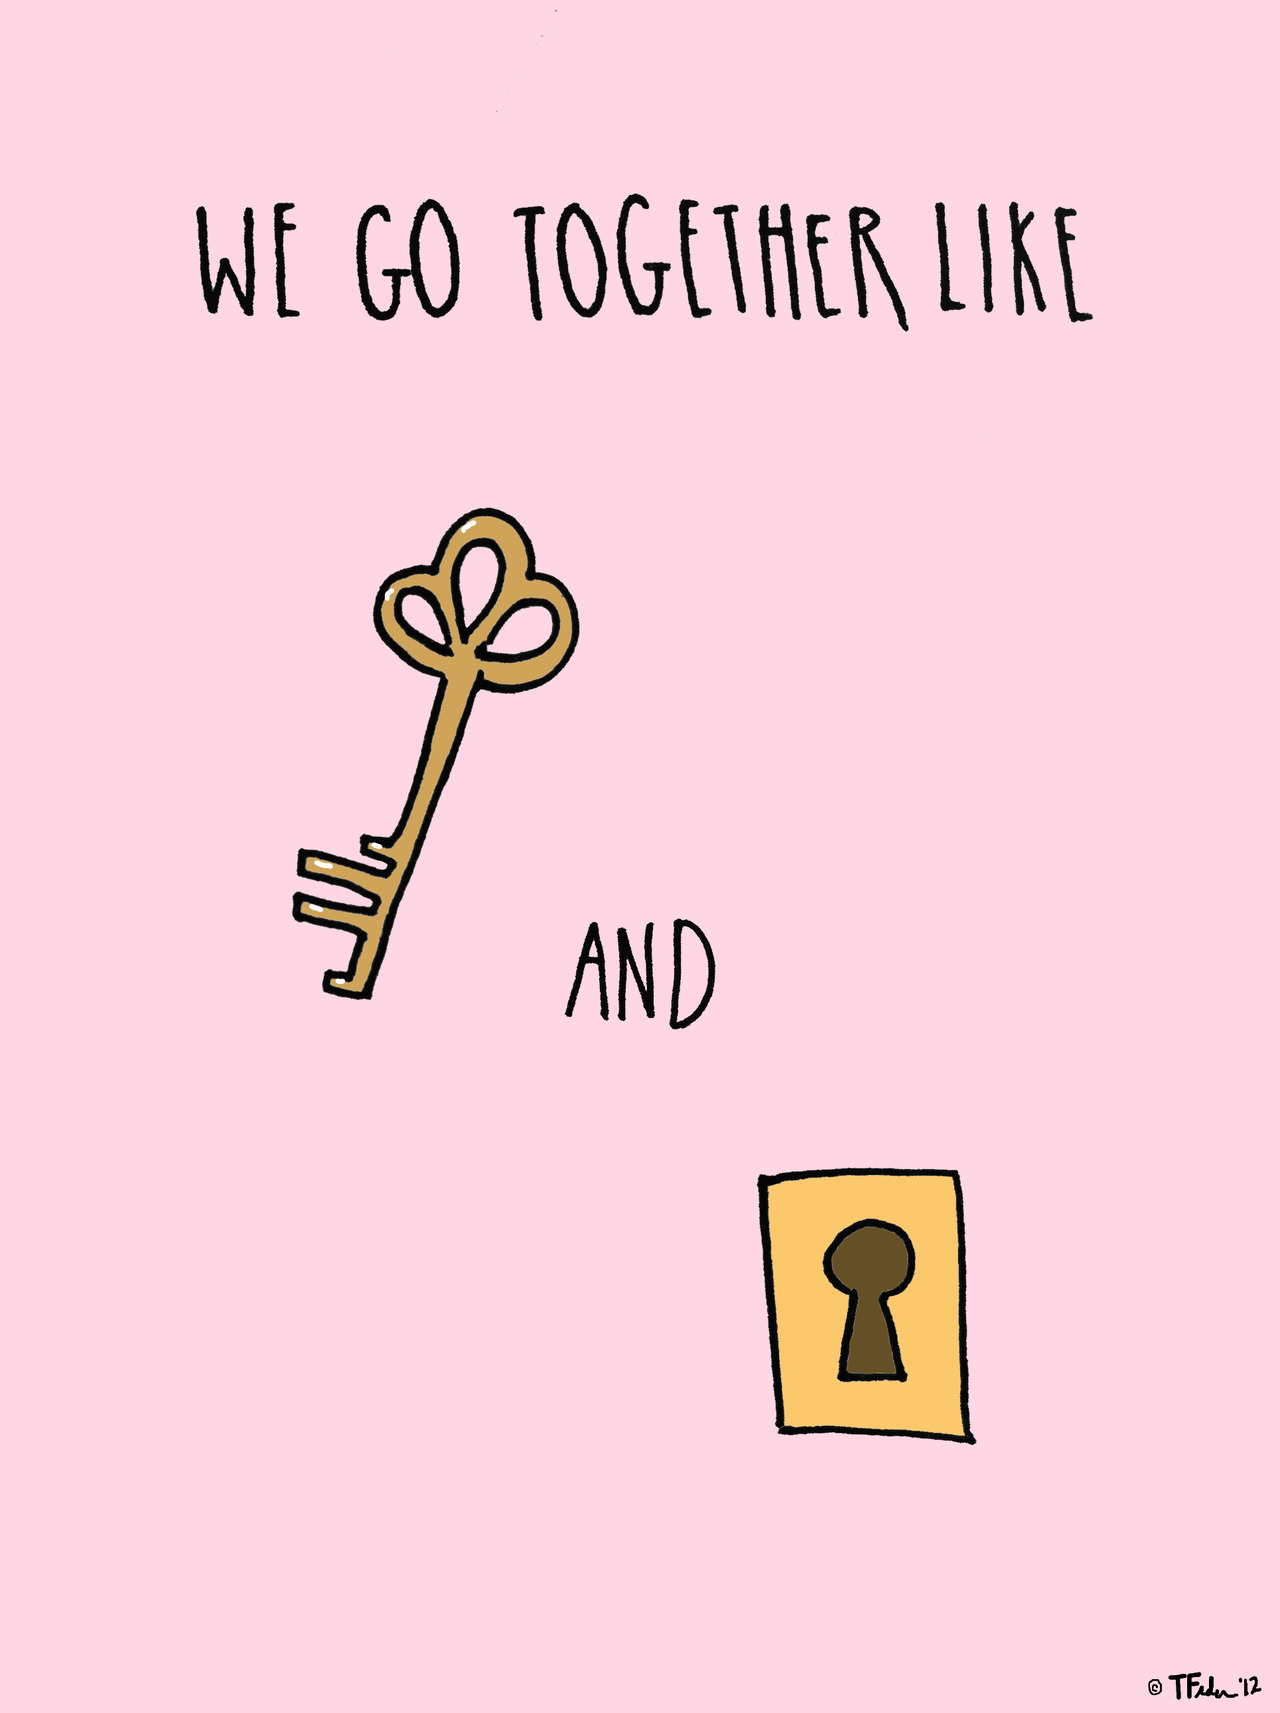 Like Lock and Key (by Tyler Feder)